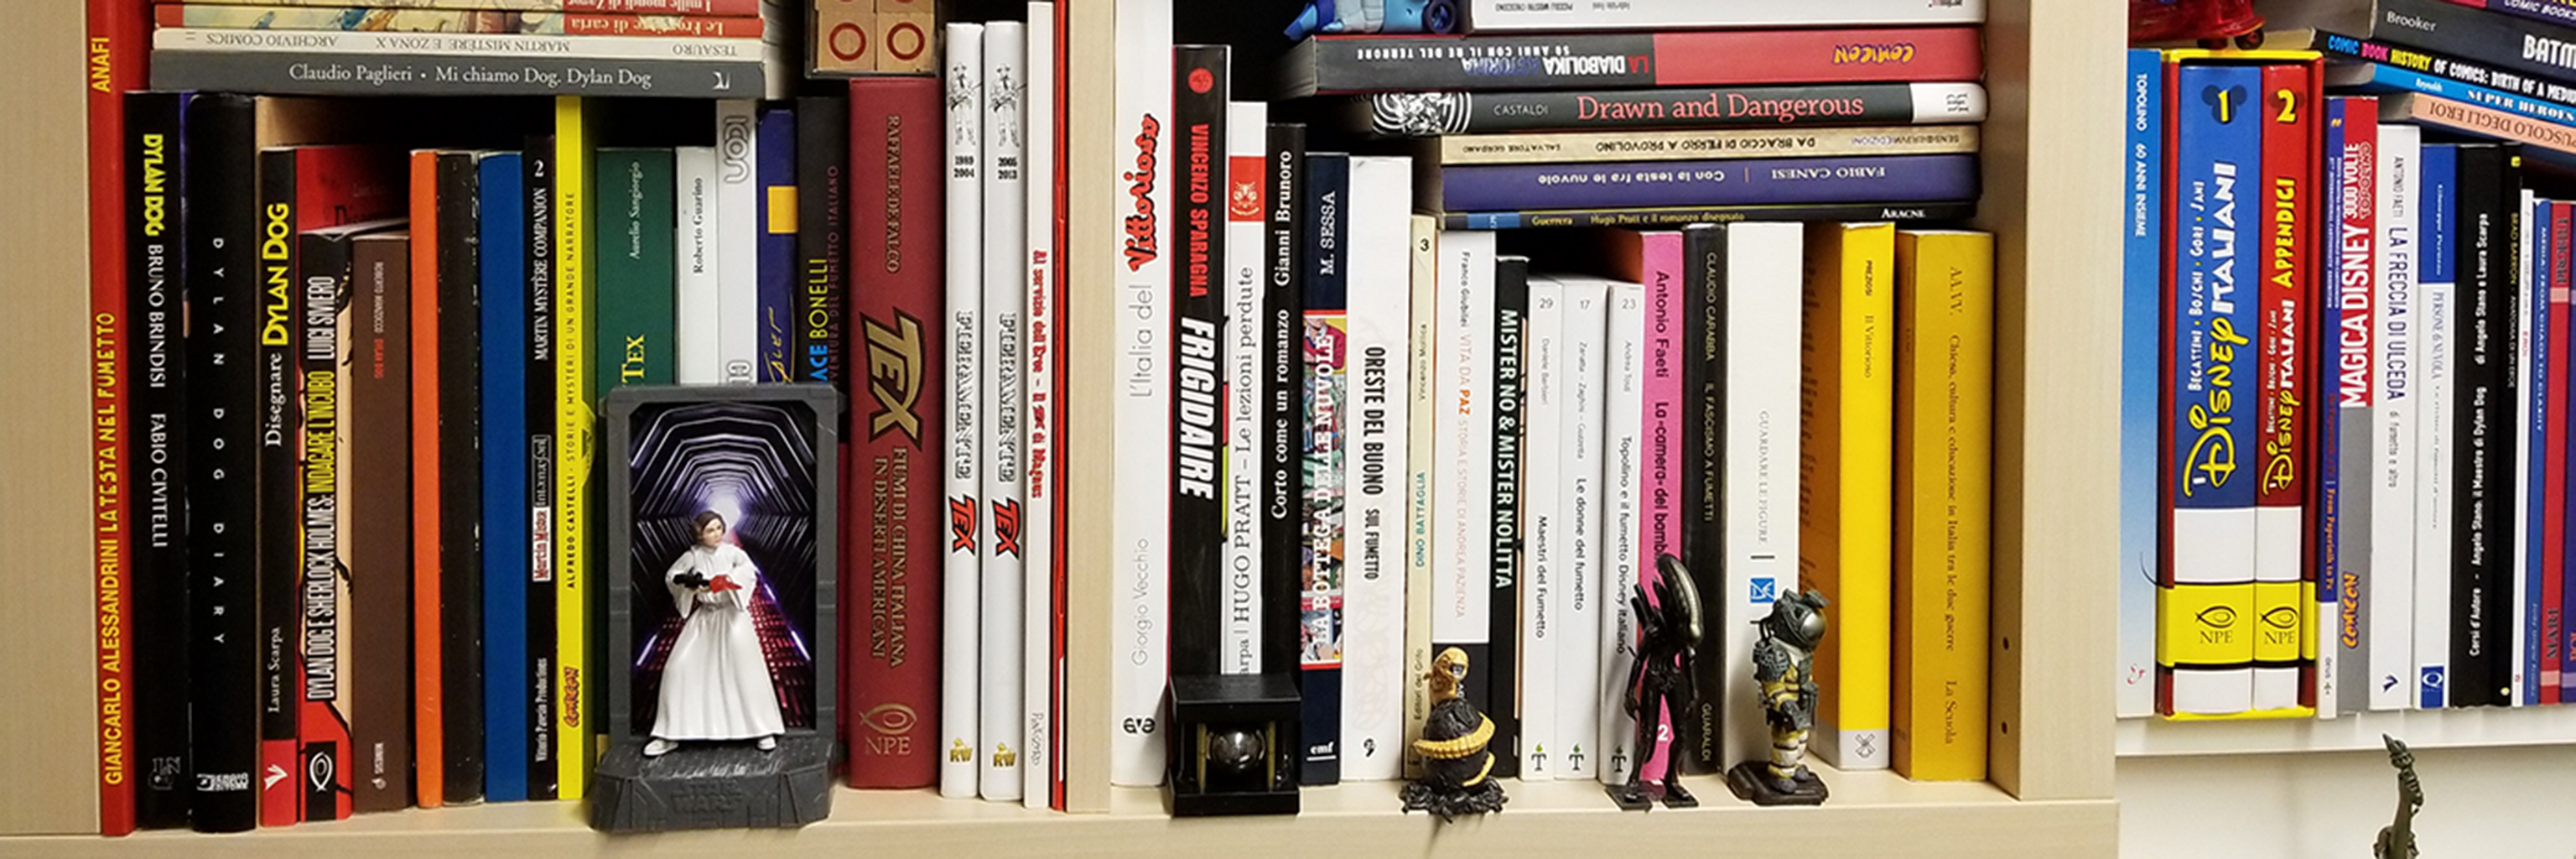 Image of a bookshelf full with books and action figures.